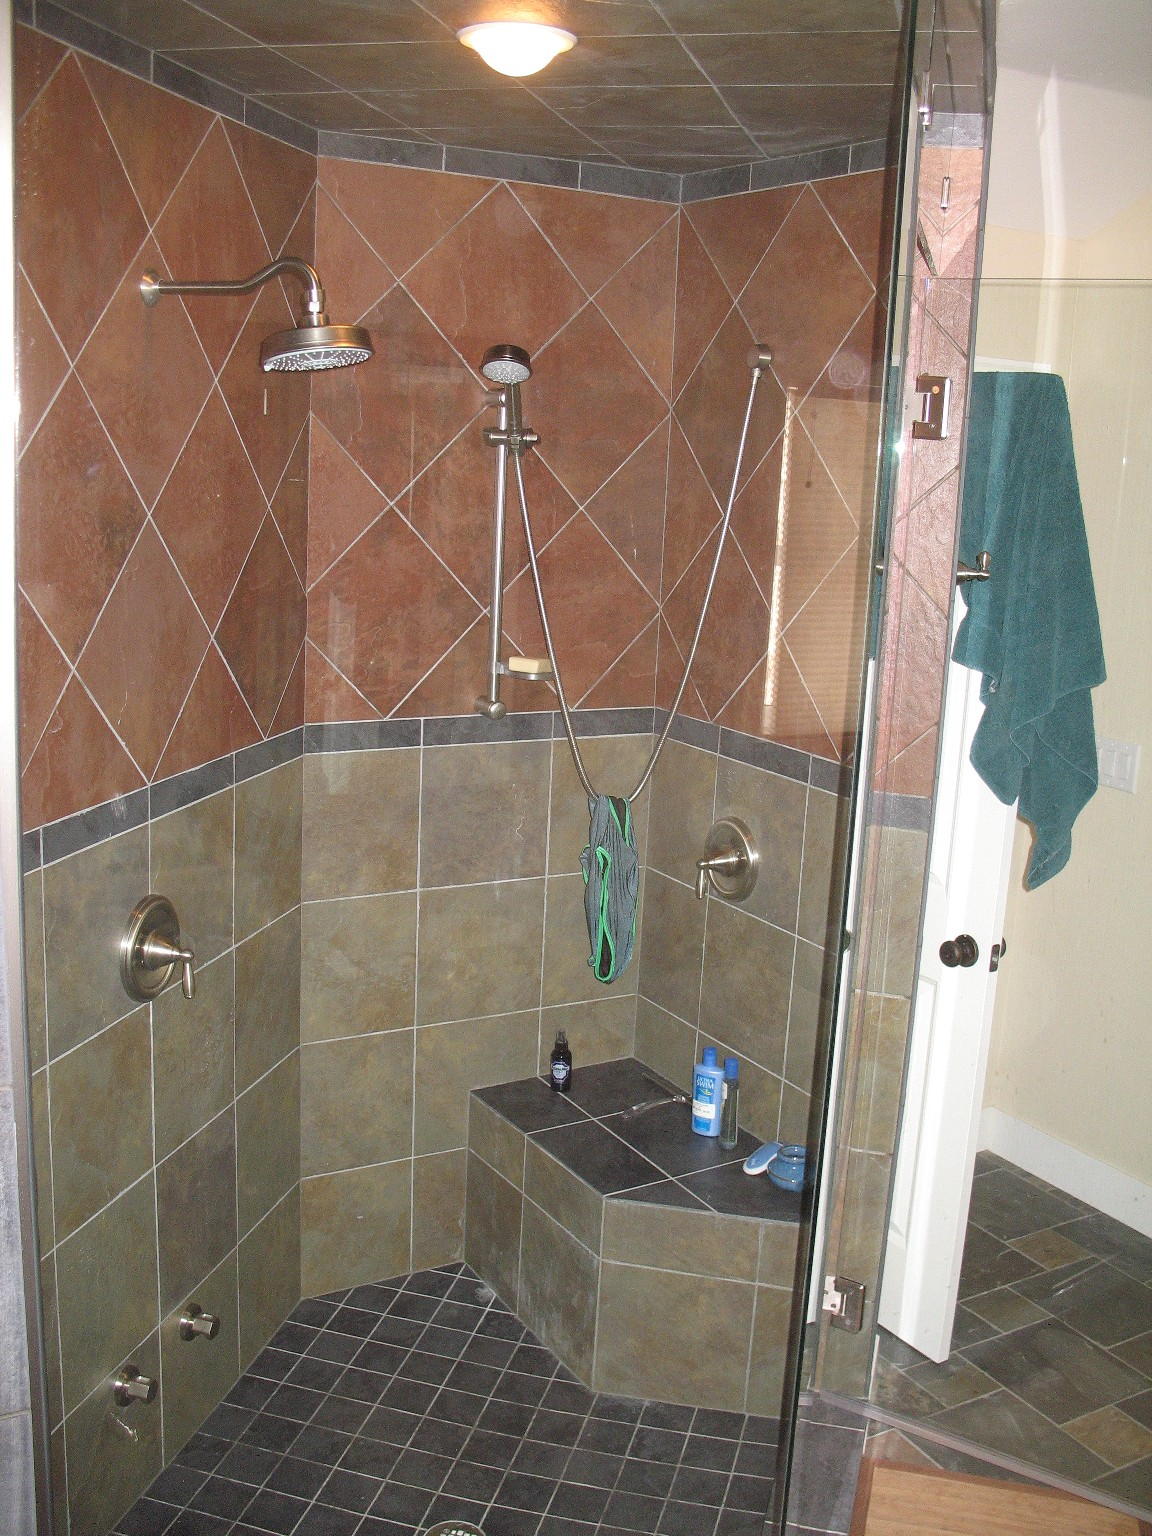 Tile work in bathrooms - Williams Master Bathroom Tile